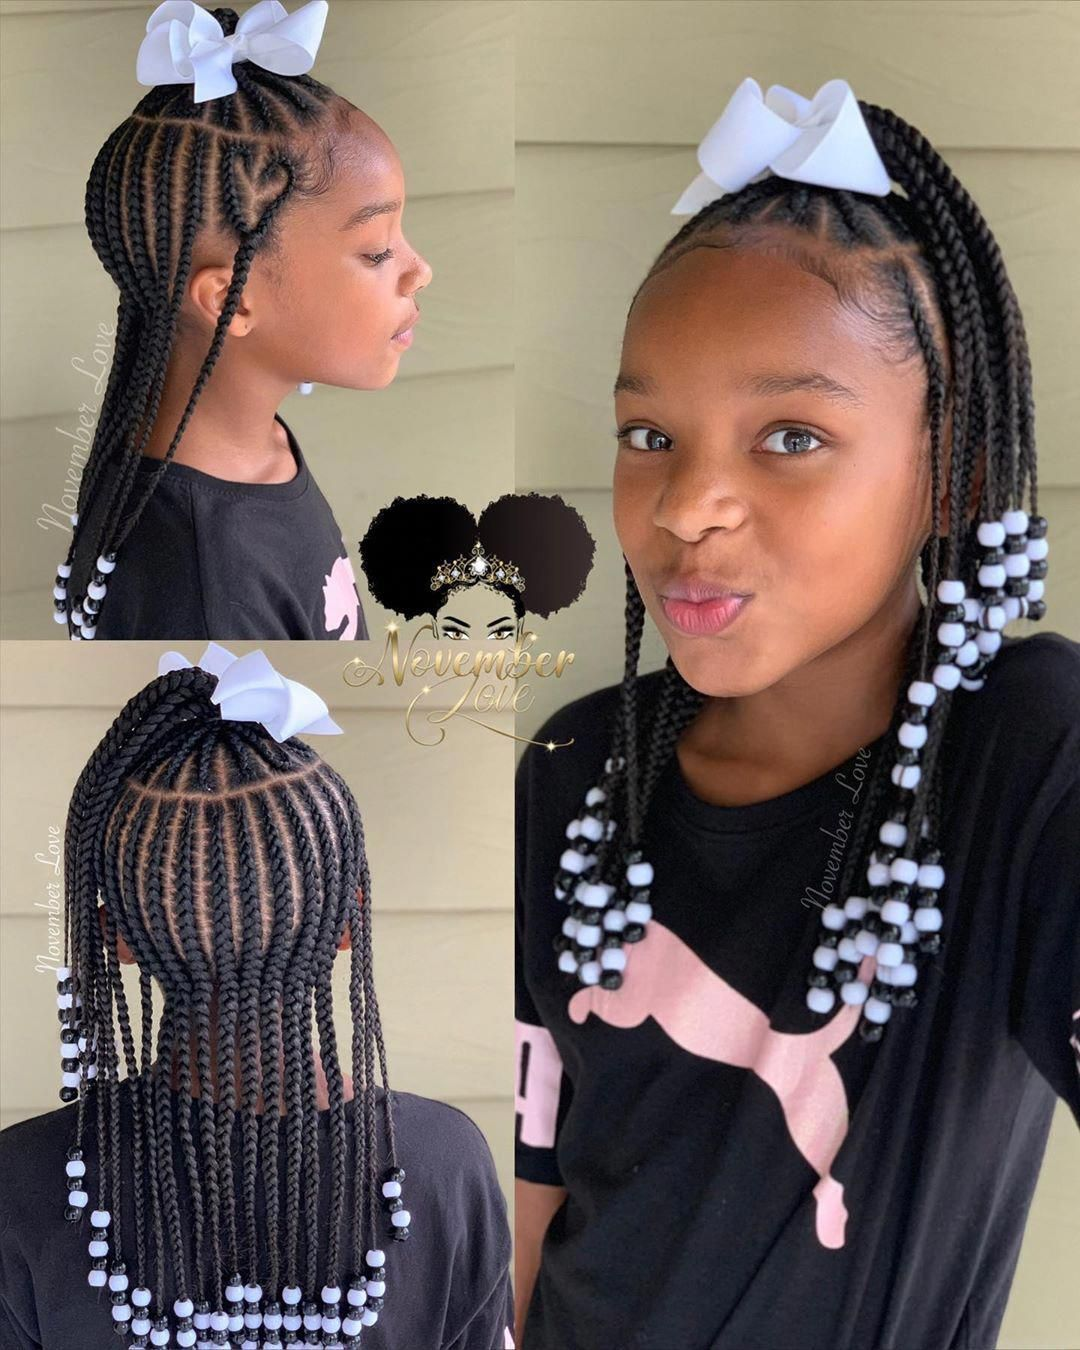 Children S Braids And Beads Booking Link In Bio Childrenhairstyles Braidart Childrensbraids Braidsa Braids For Kids Kids Hairstyles Girls Kids Hairstyles